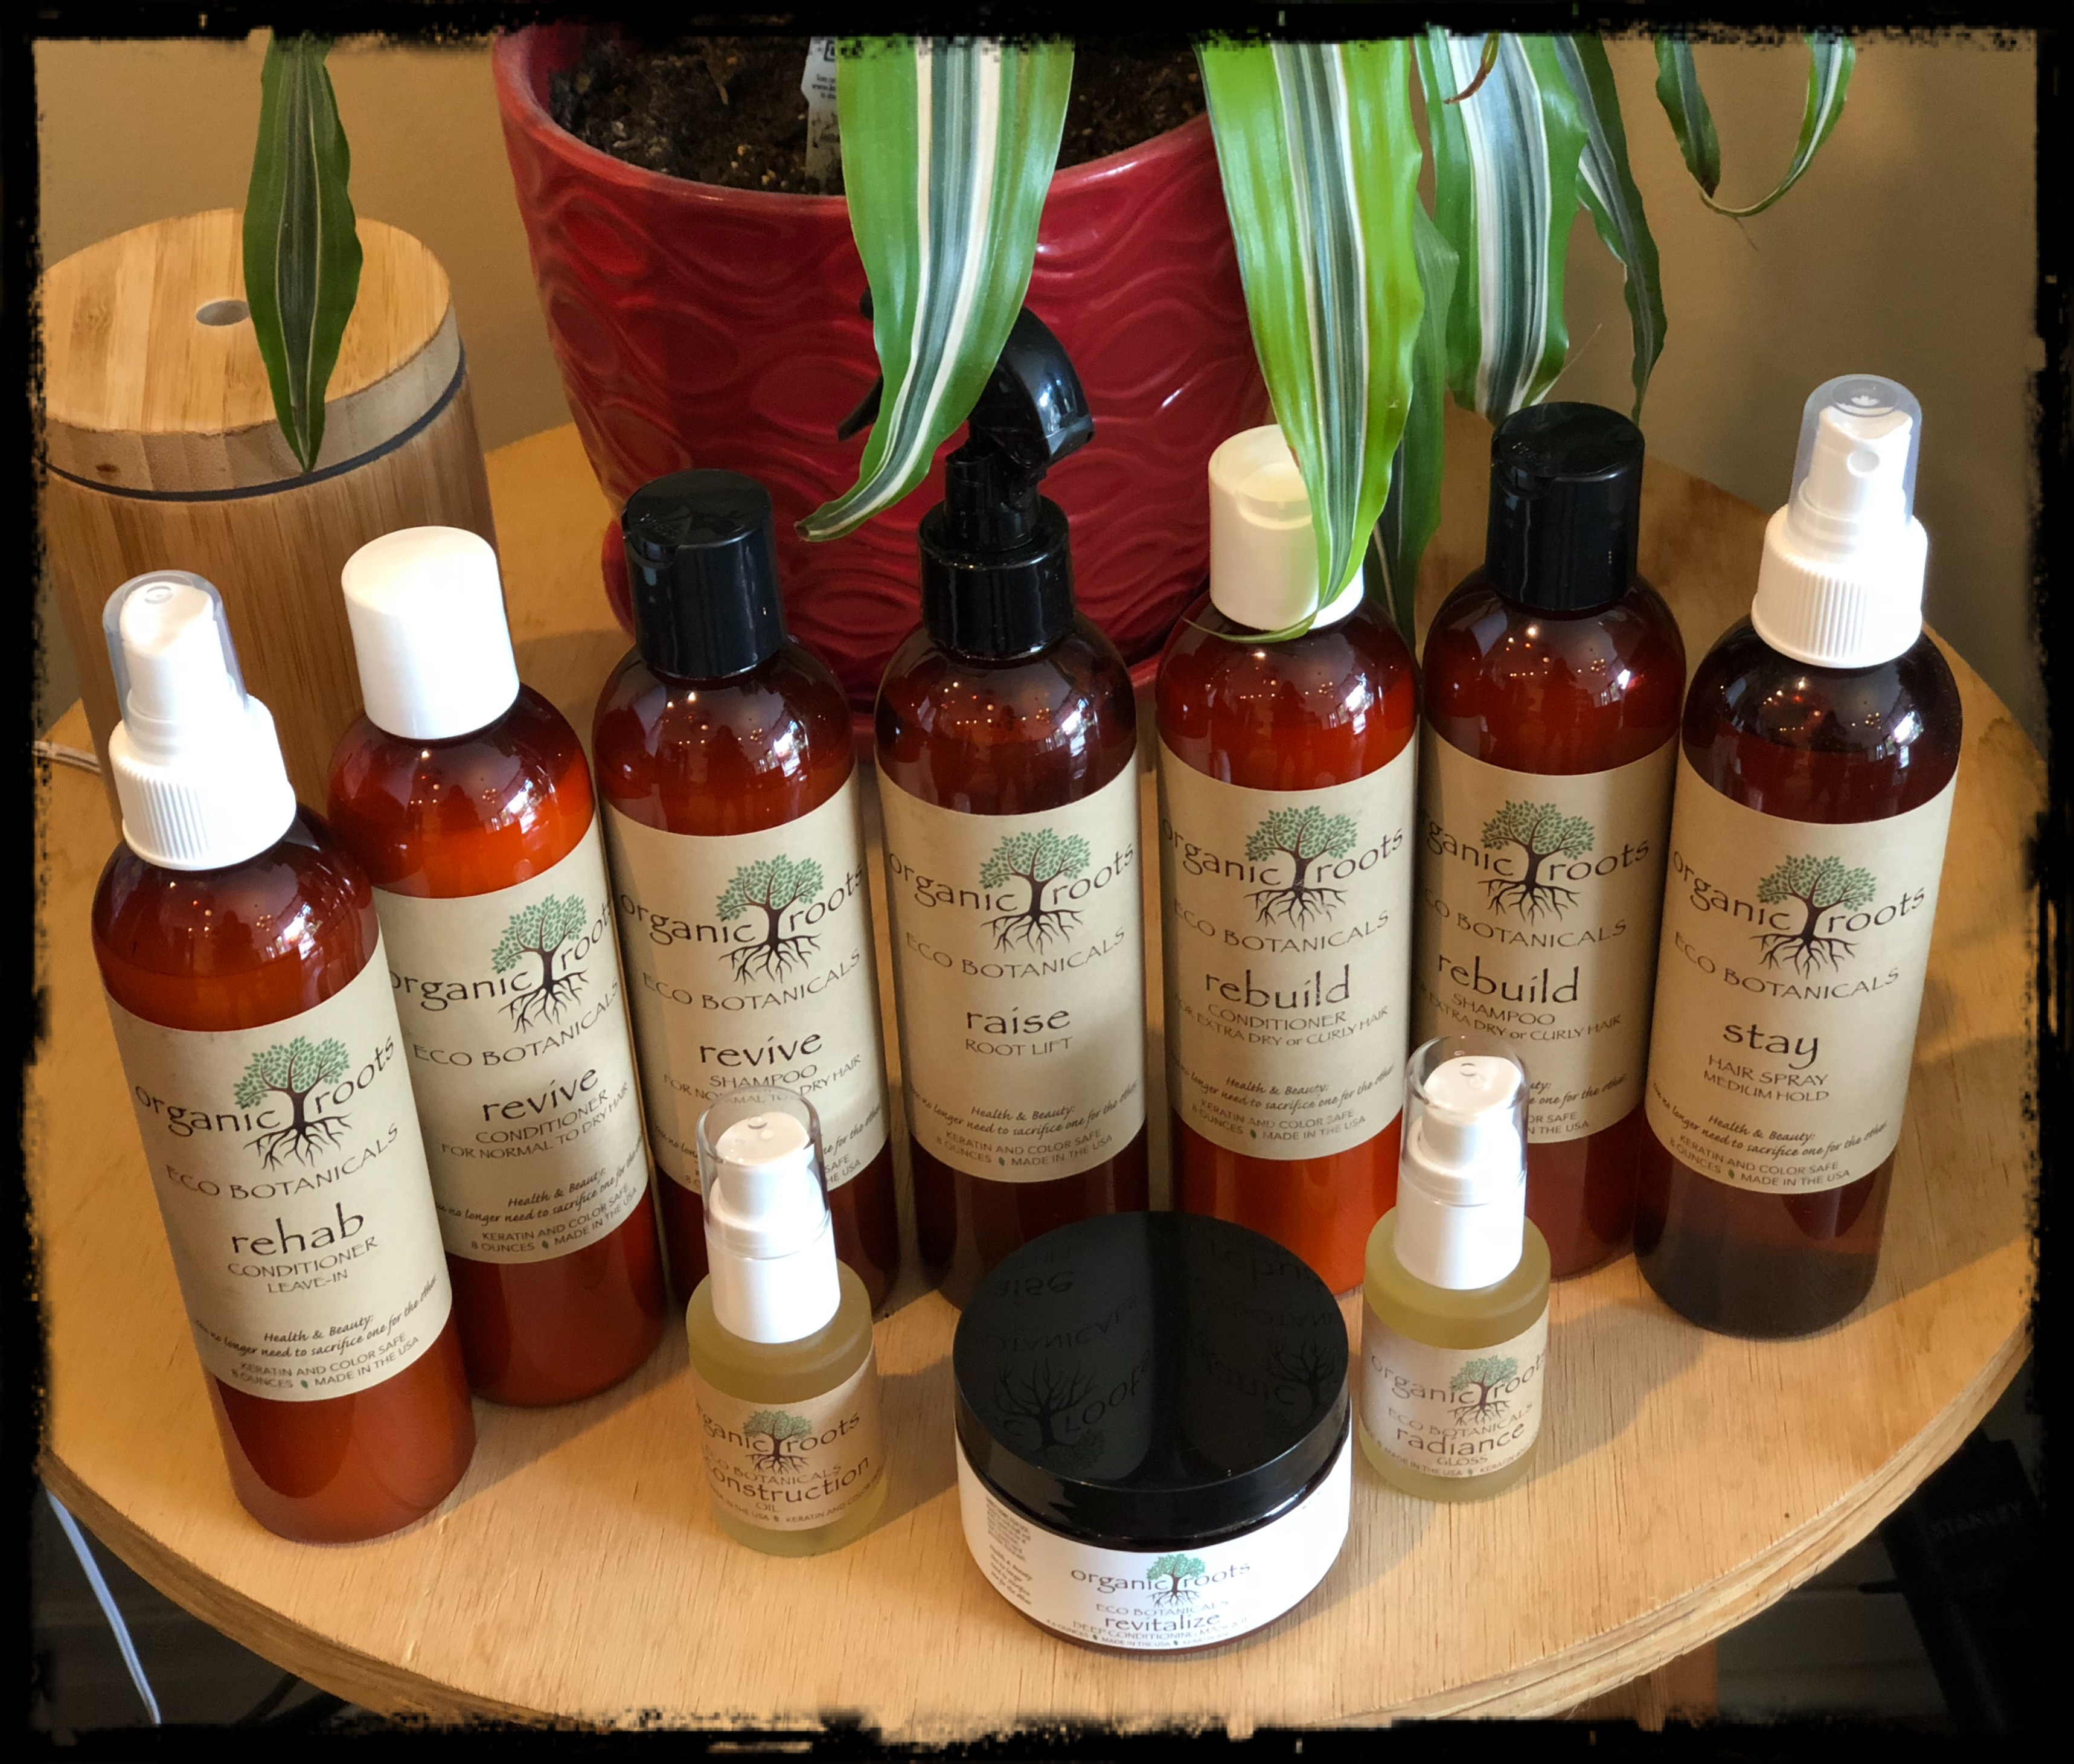 Organic Roots Eco Botanicals